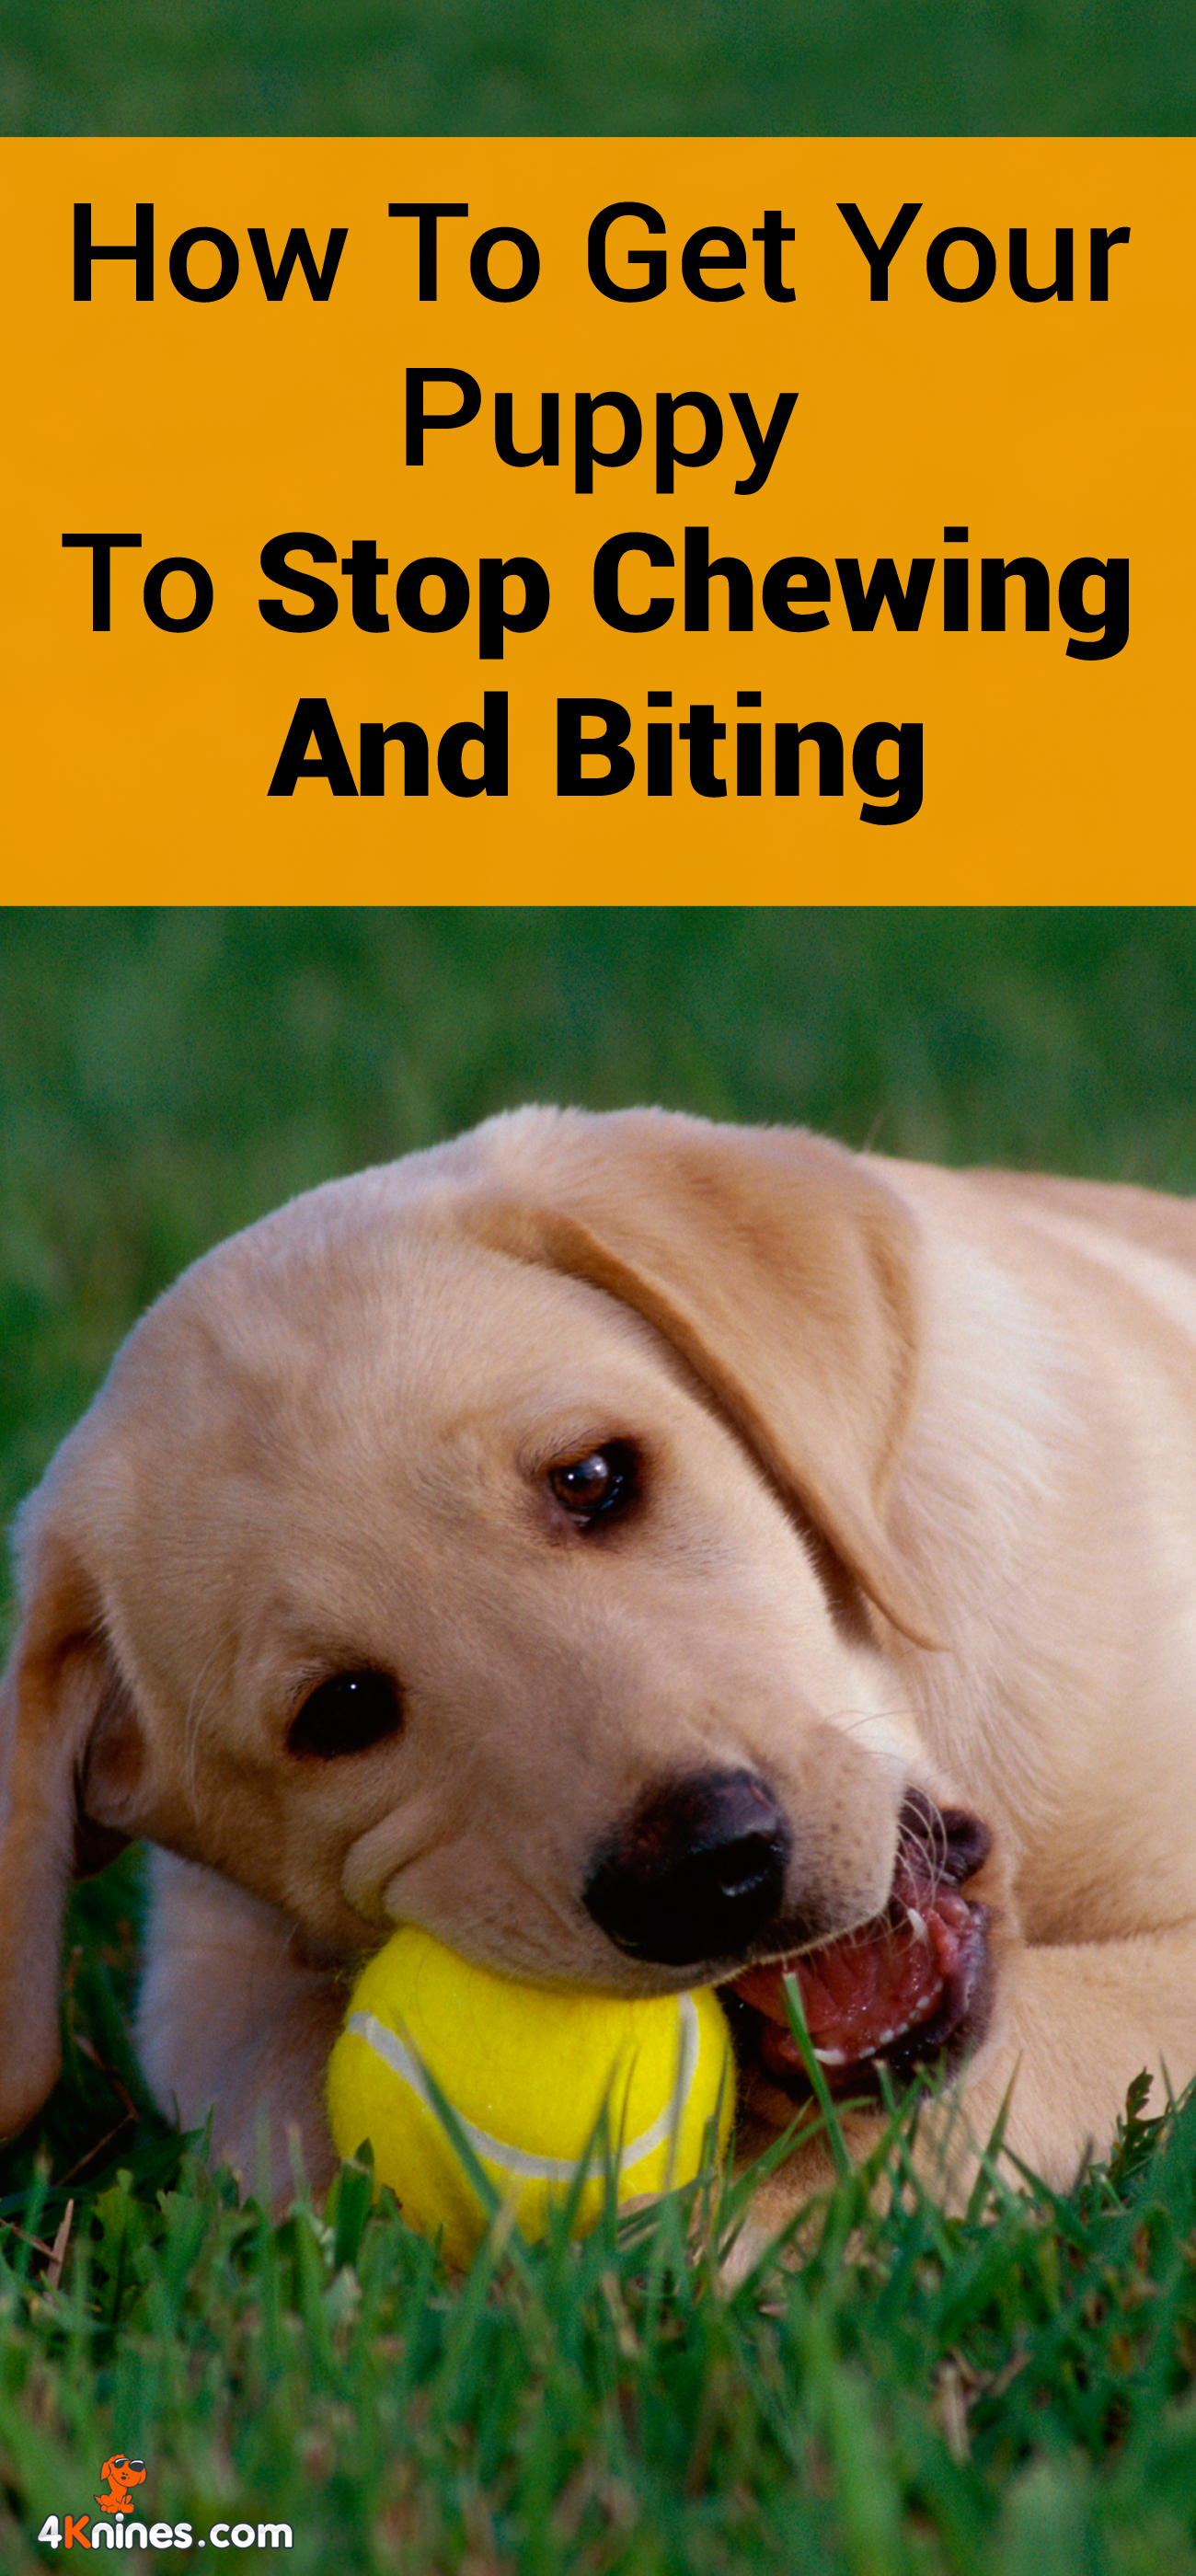 Bad Behavior In Dogs How To Stop Chewing Biting Digging And More Puppy Chewing Behavior Dog Behavior